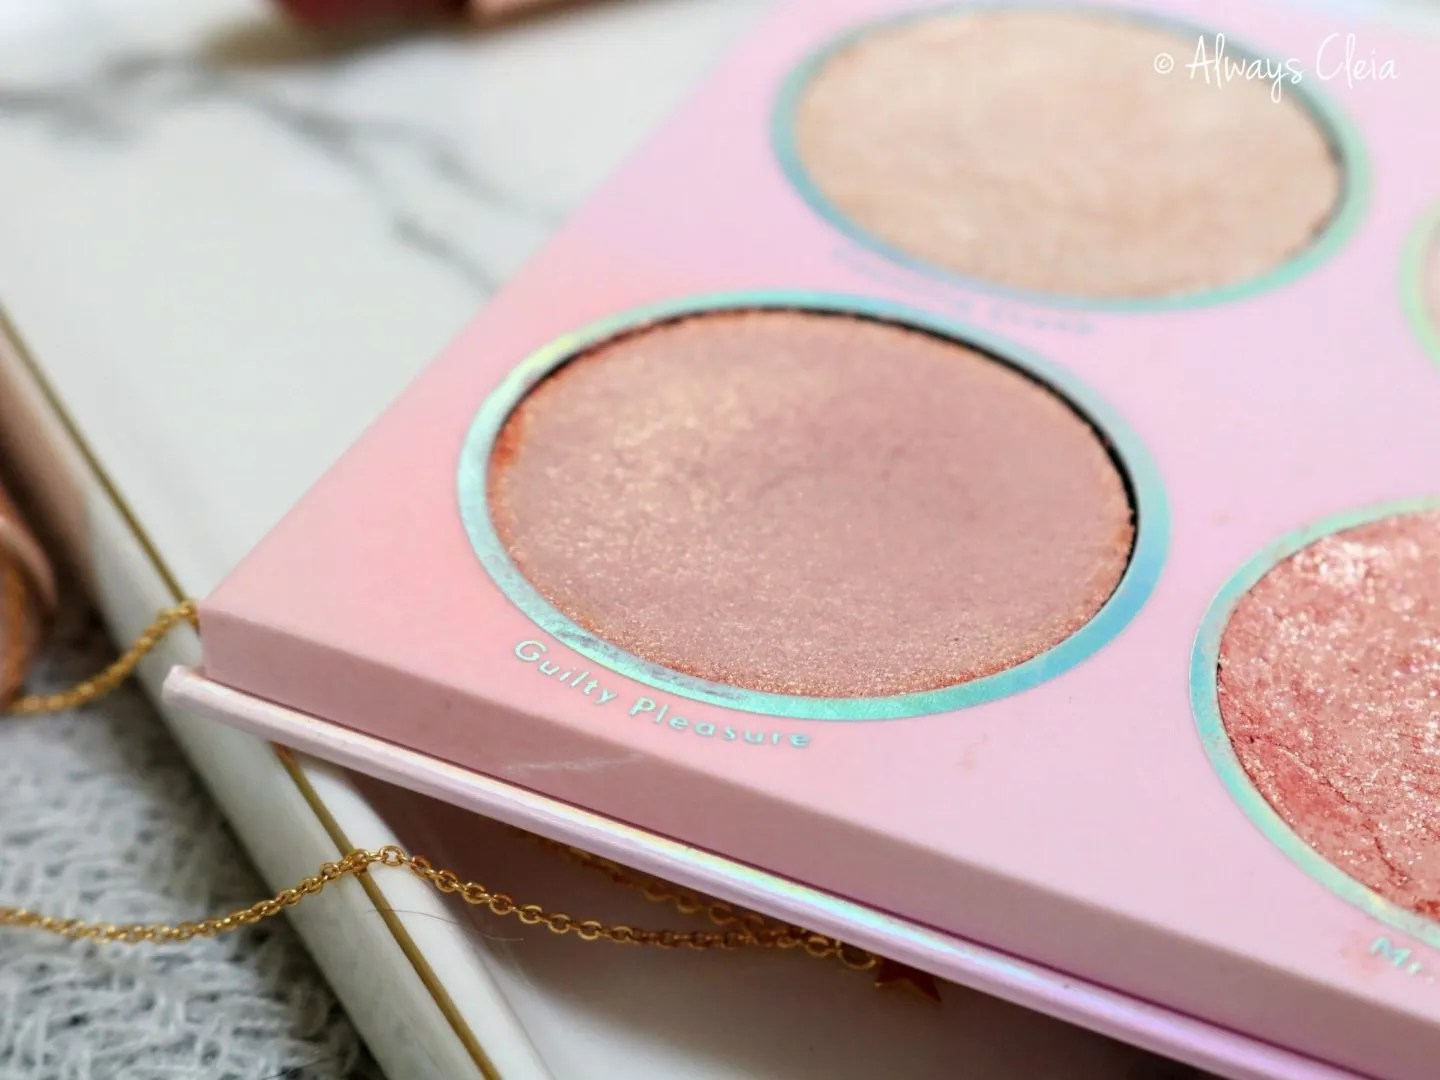 ColourPop Dream Sequence Guilty Pleasure Super Shock Highlighter